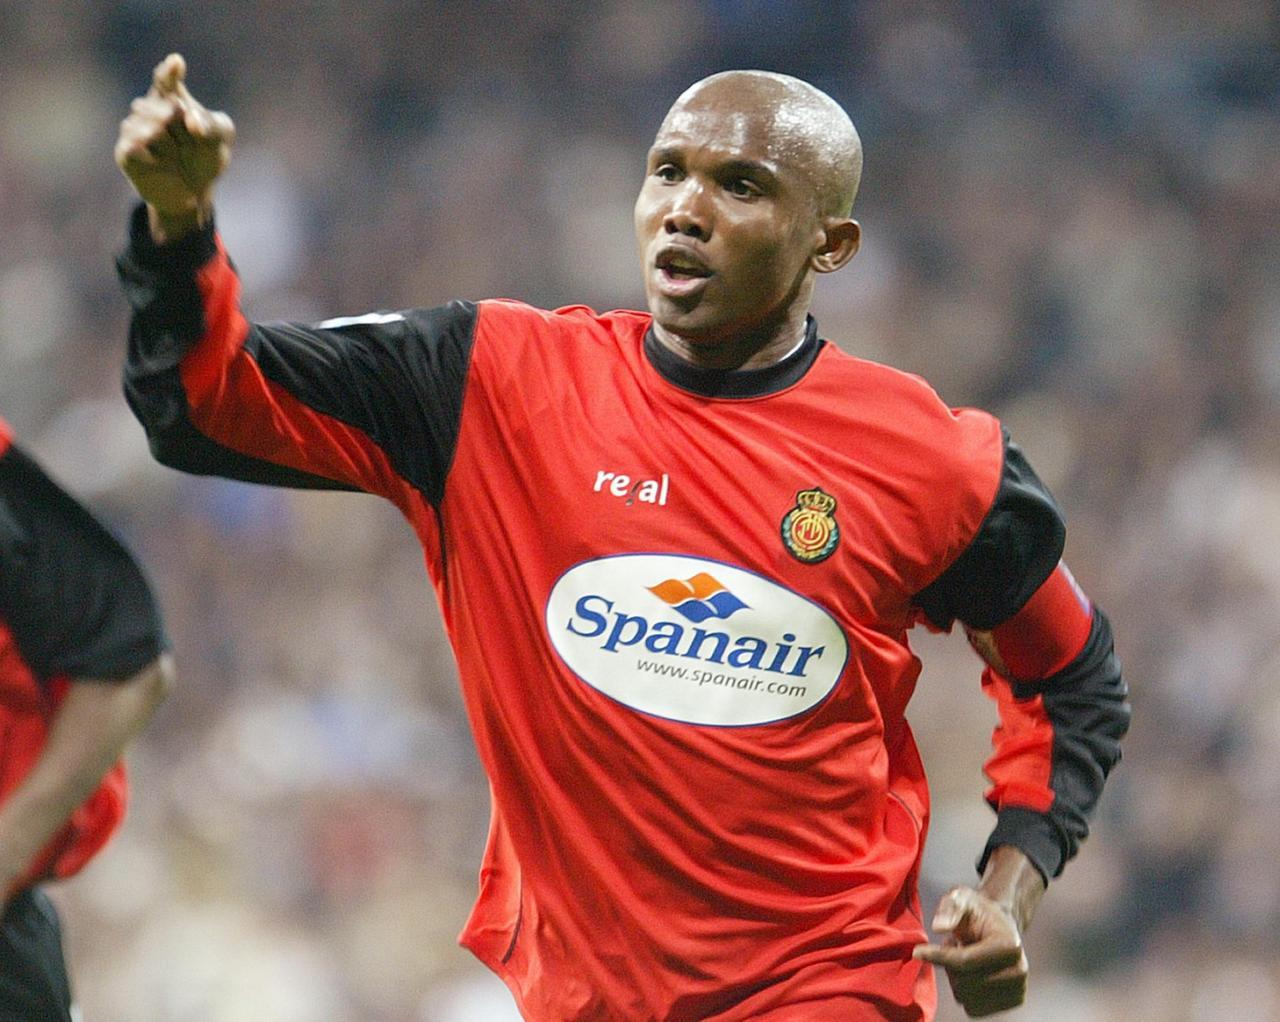 Eto'o And The Tradition of World-Class Strikers At RCD Mallorca